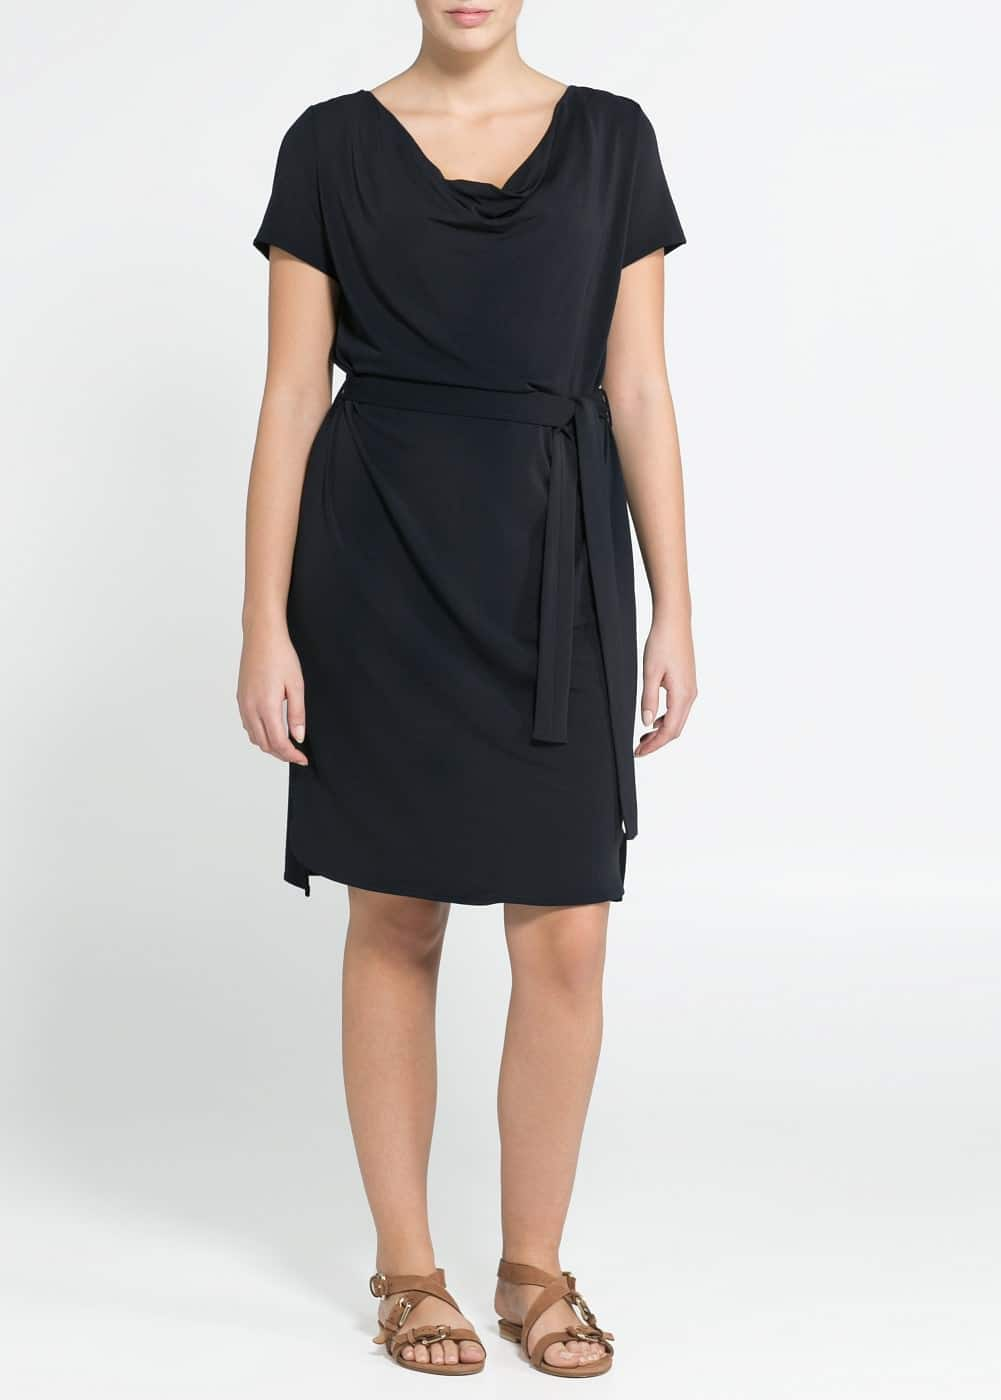 Draped neckline dress